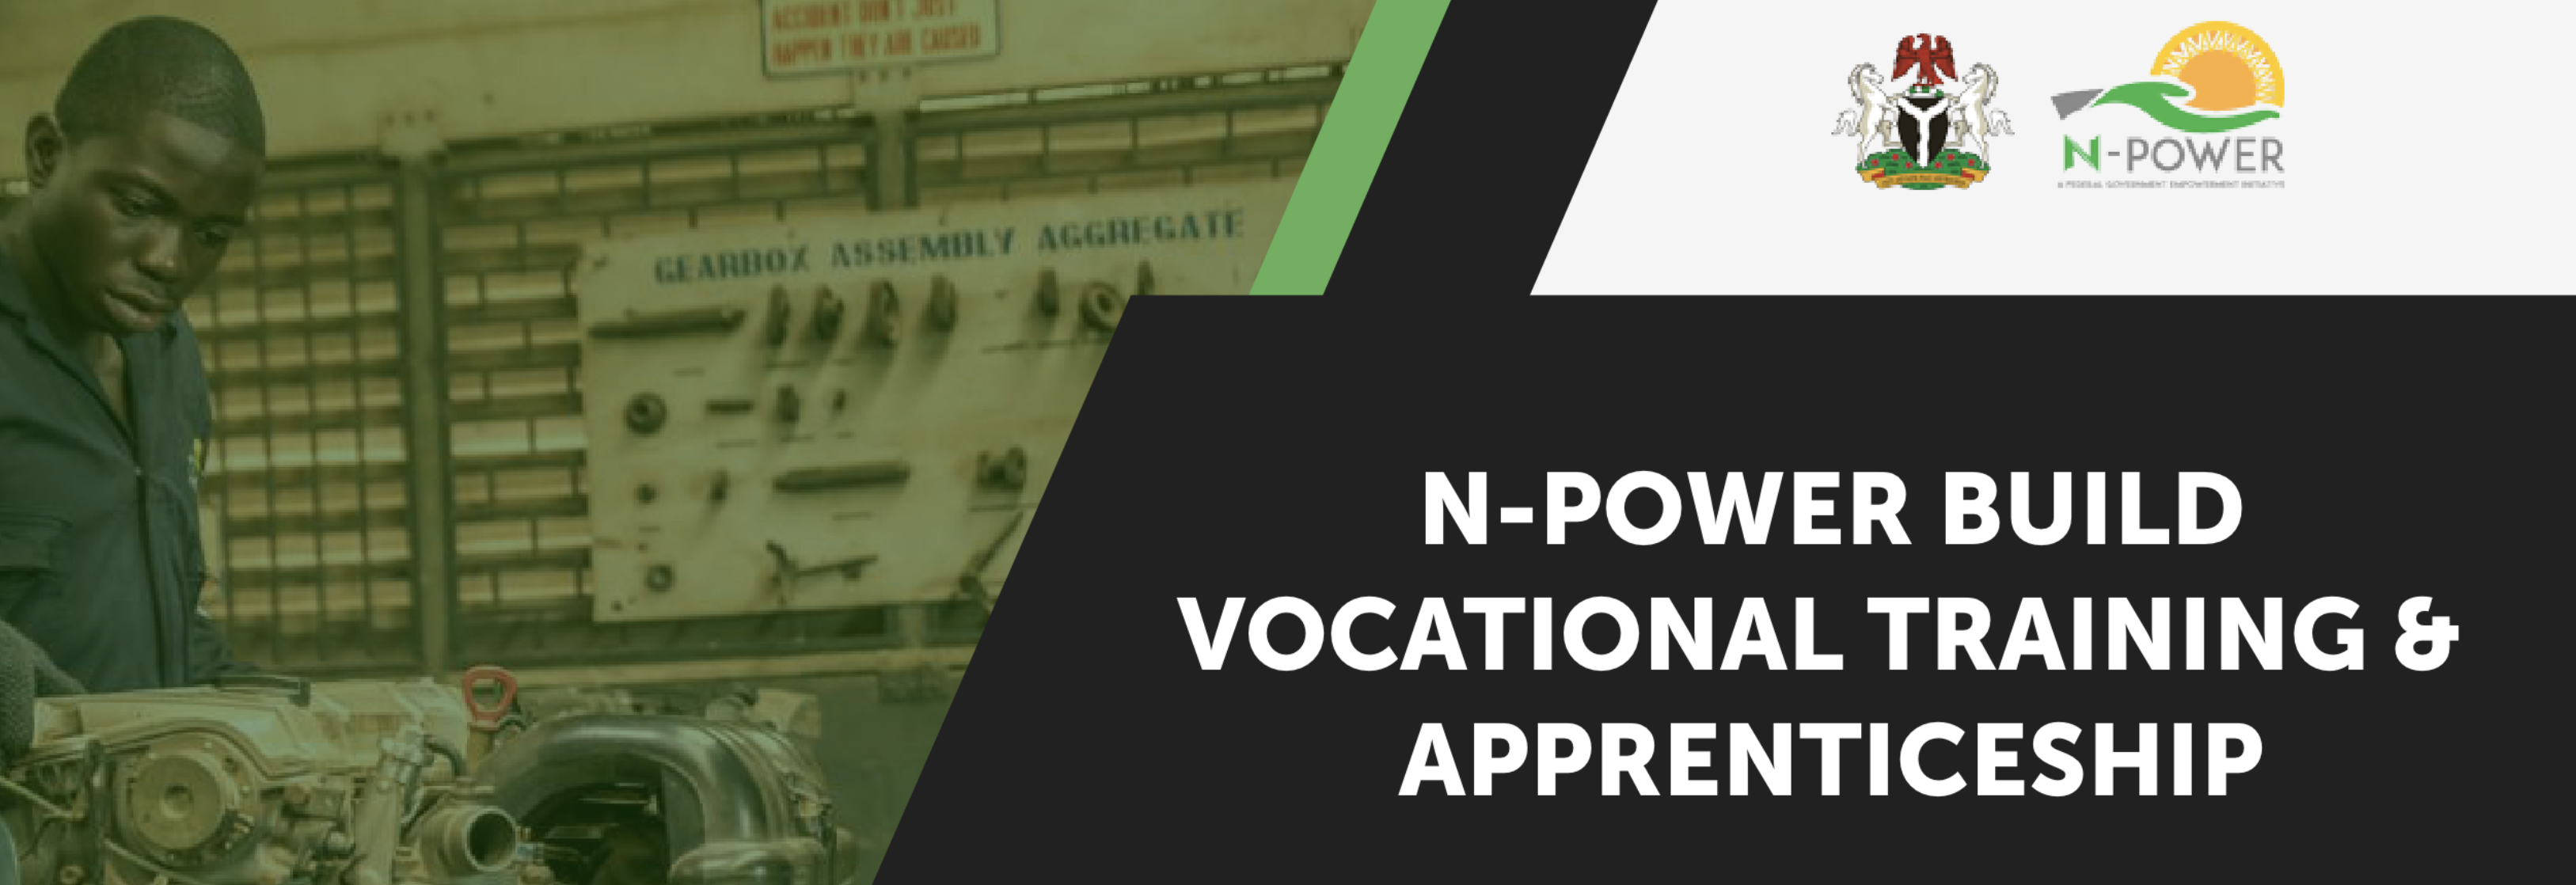 Check Npower Shortlisted Candidate